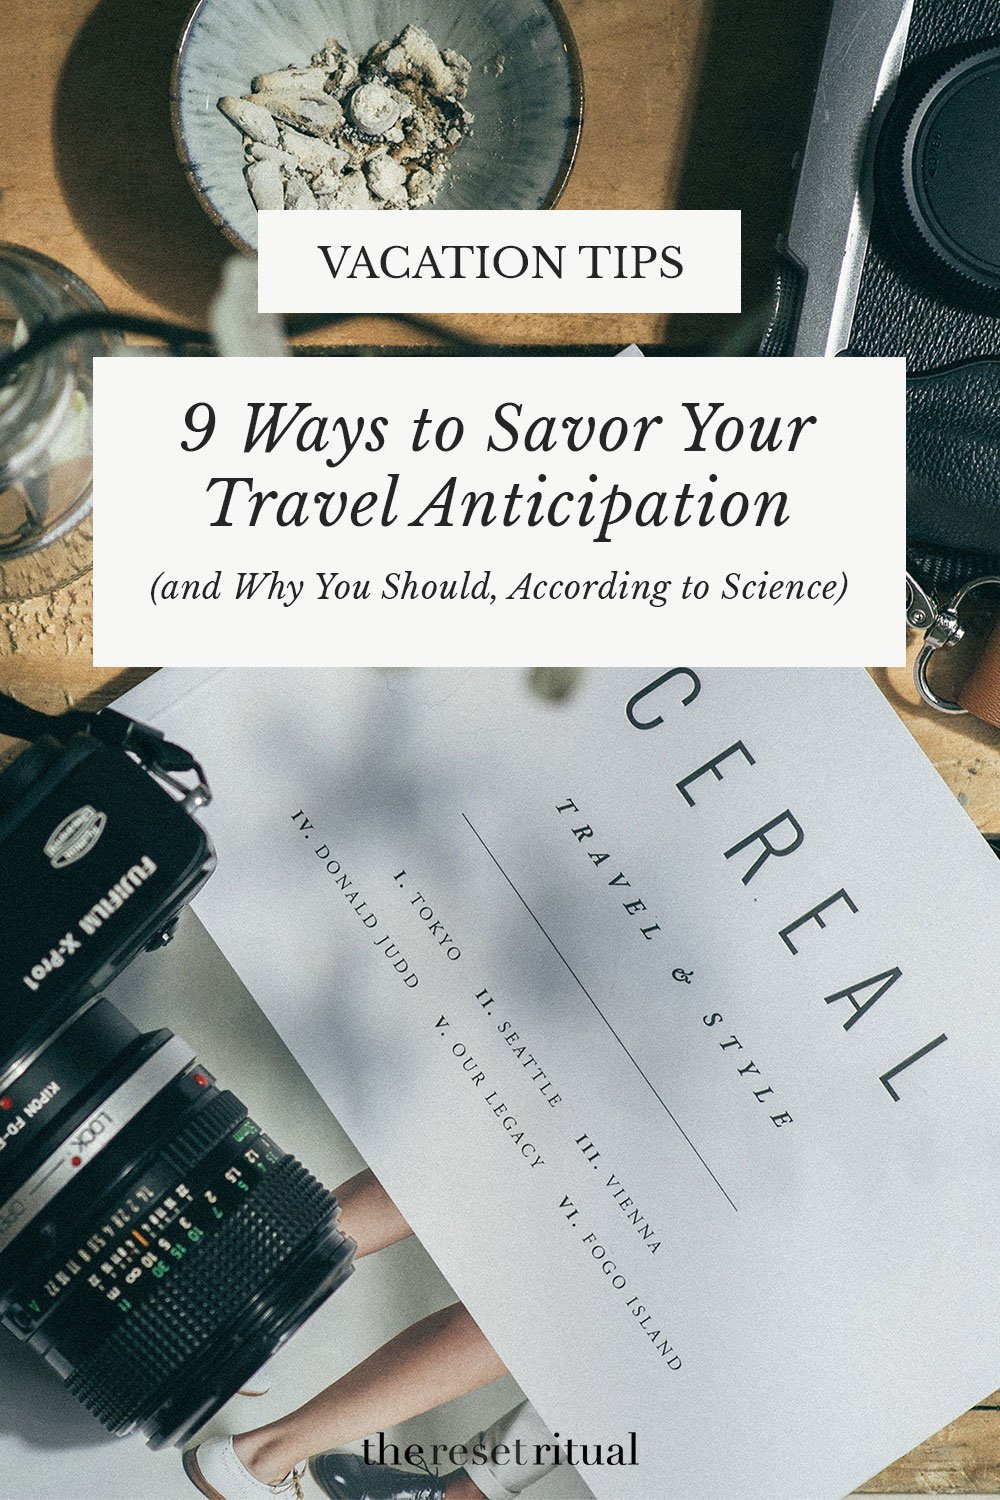 Excited for vacation? Read 9 things to do before your trip to savor the anticipation and get the most out of your trip. #vacationplanning #traveltips